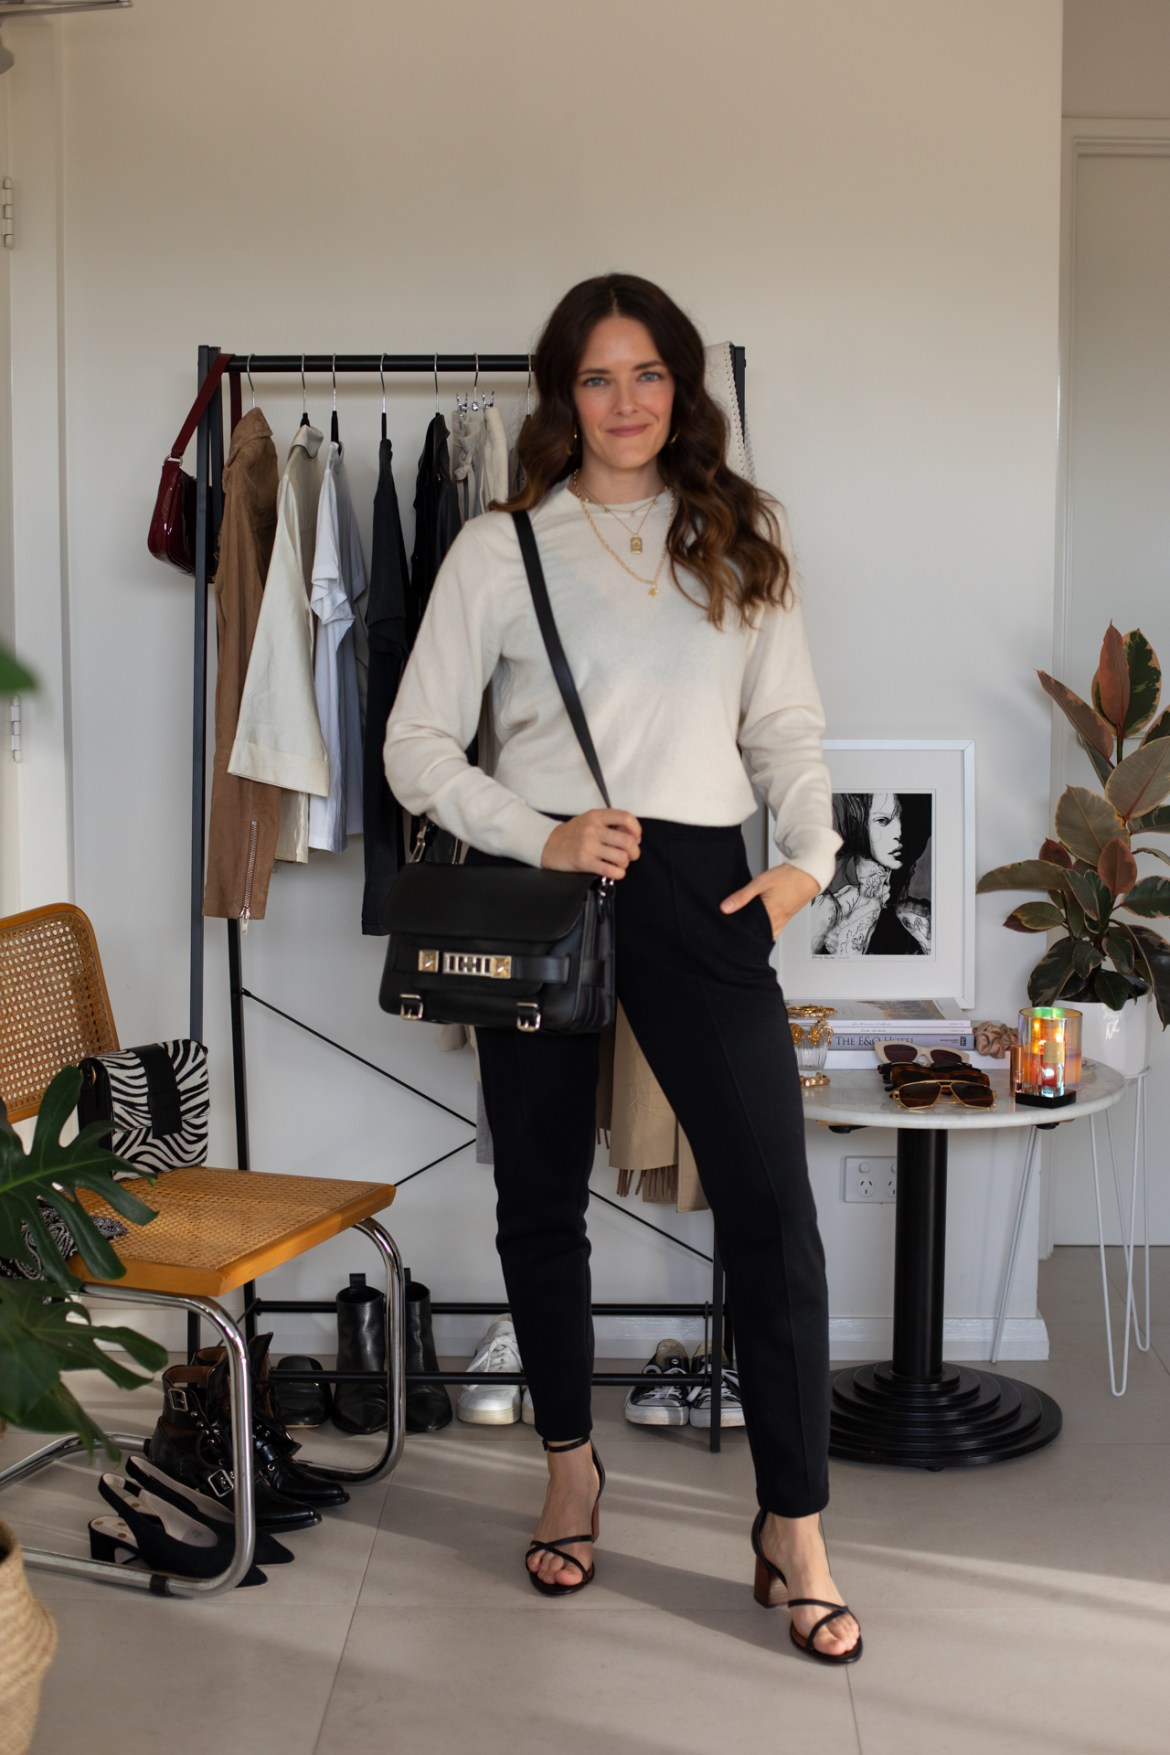 sweat pants outfit ideas. how to style them for everyday